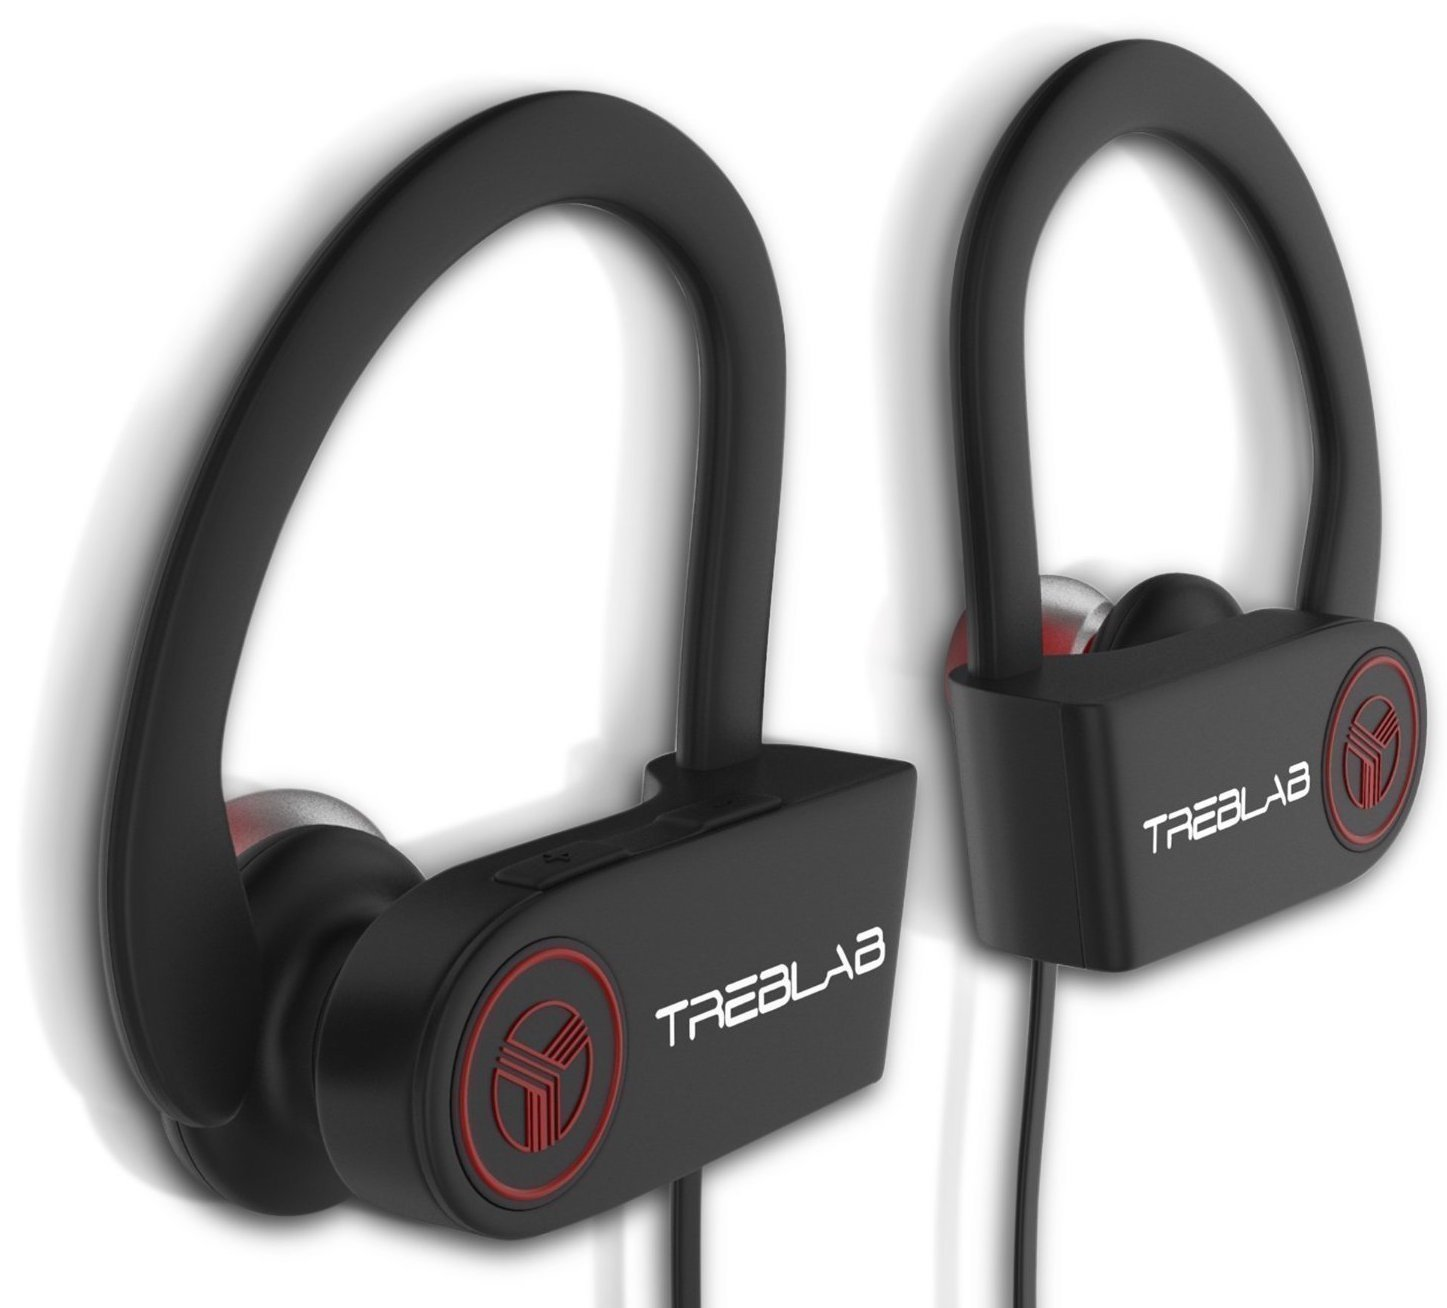 Treblab Xr100 Bluetooth Sports Headphones, Best Wireless Earbuds For  Running Or Workout, Noise Cancelling